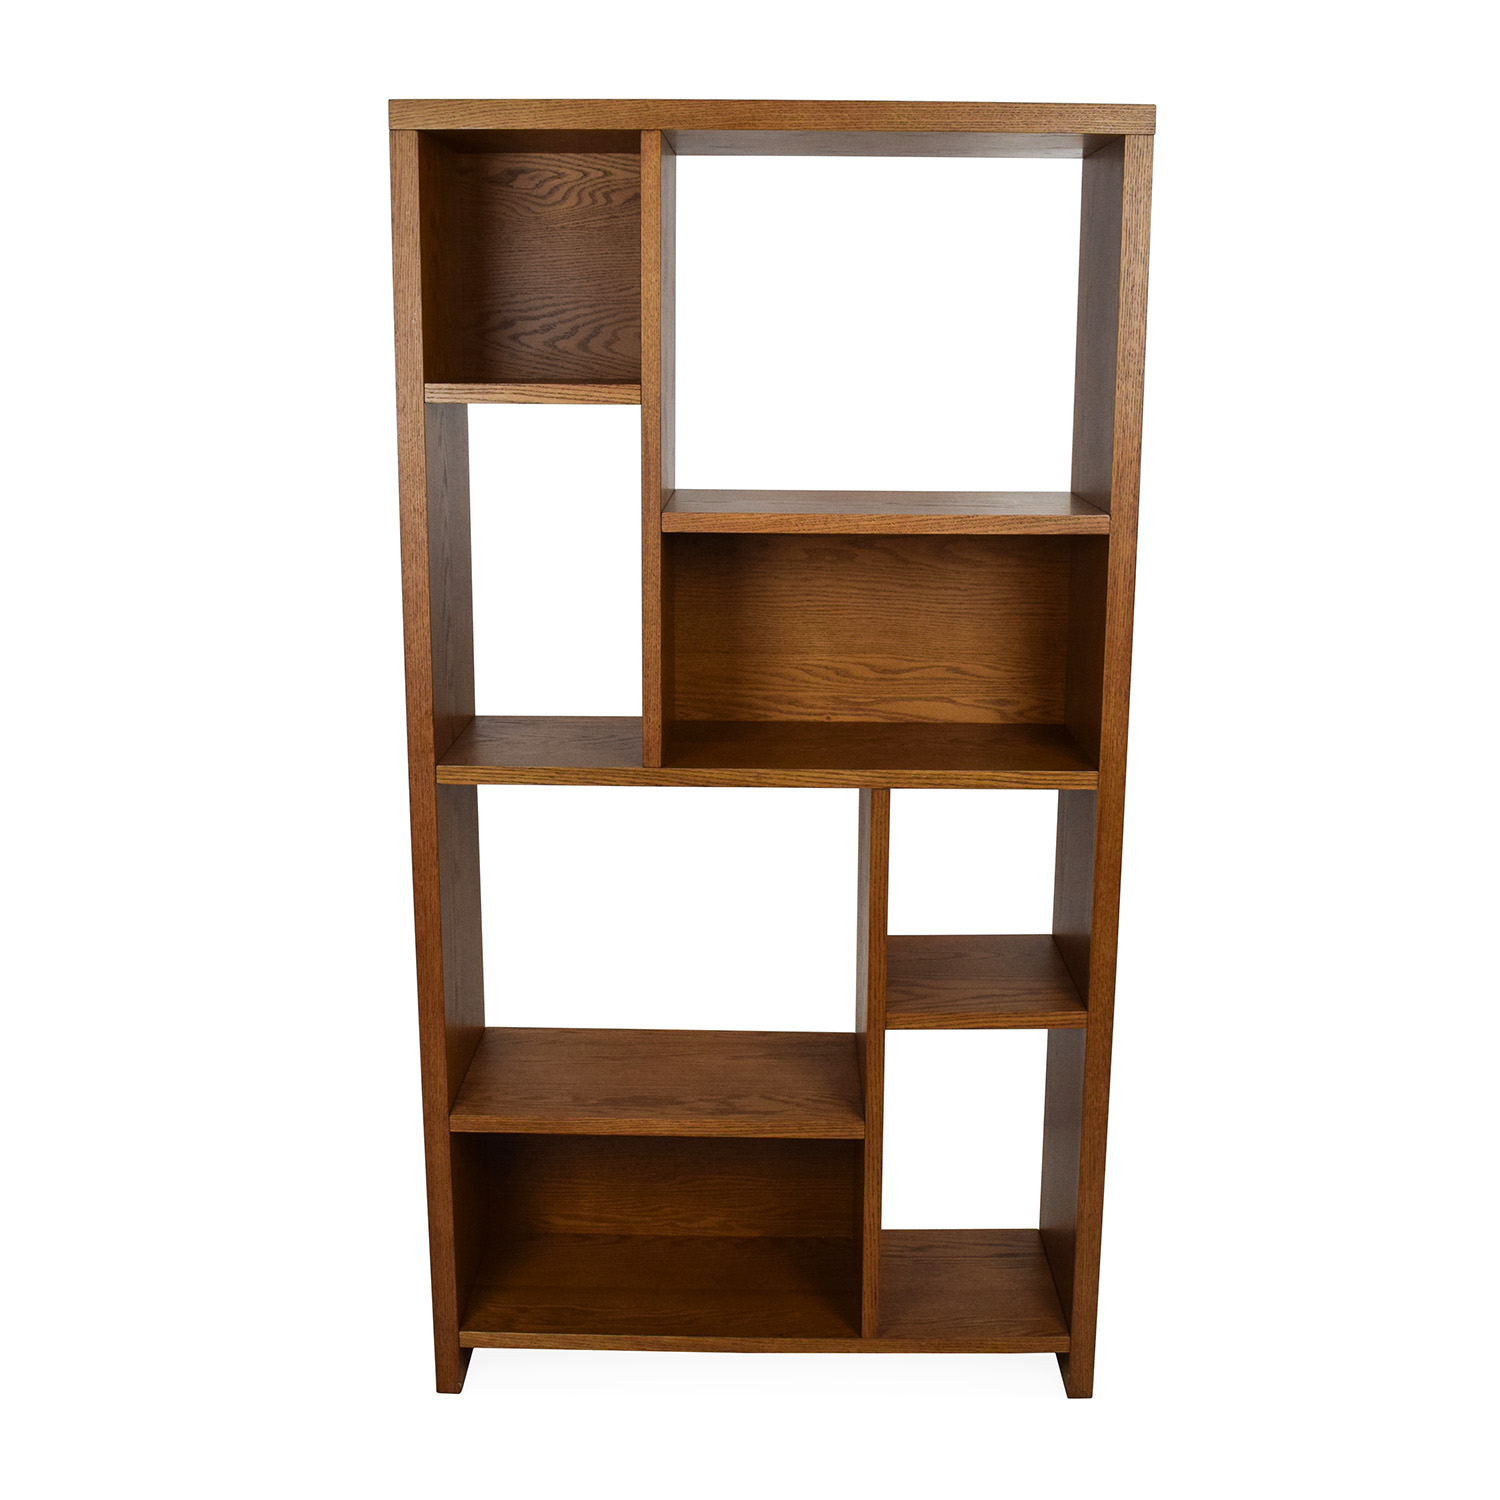 West Elm West Elm Geometric Shelving Unit Storage